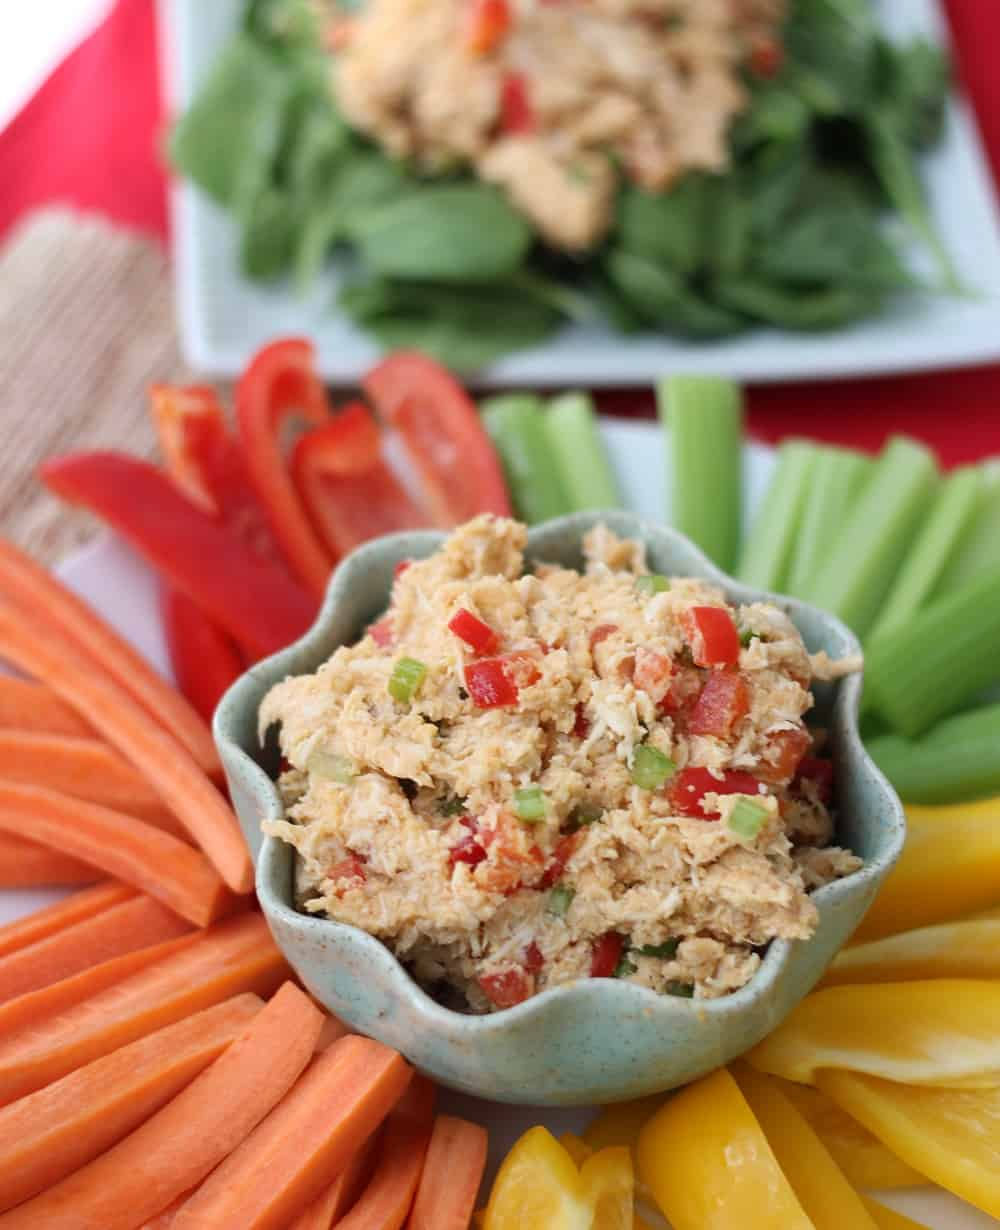 Hummus chicken salad living well kitchen hummus chicken salad forumfinder Images